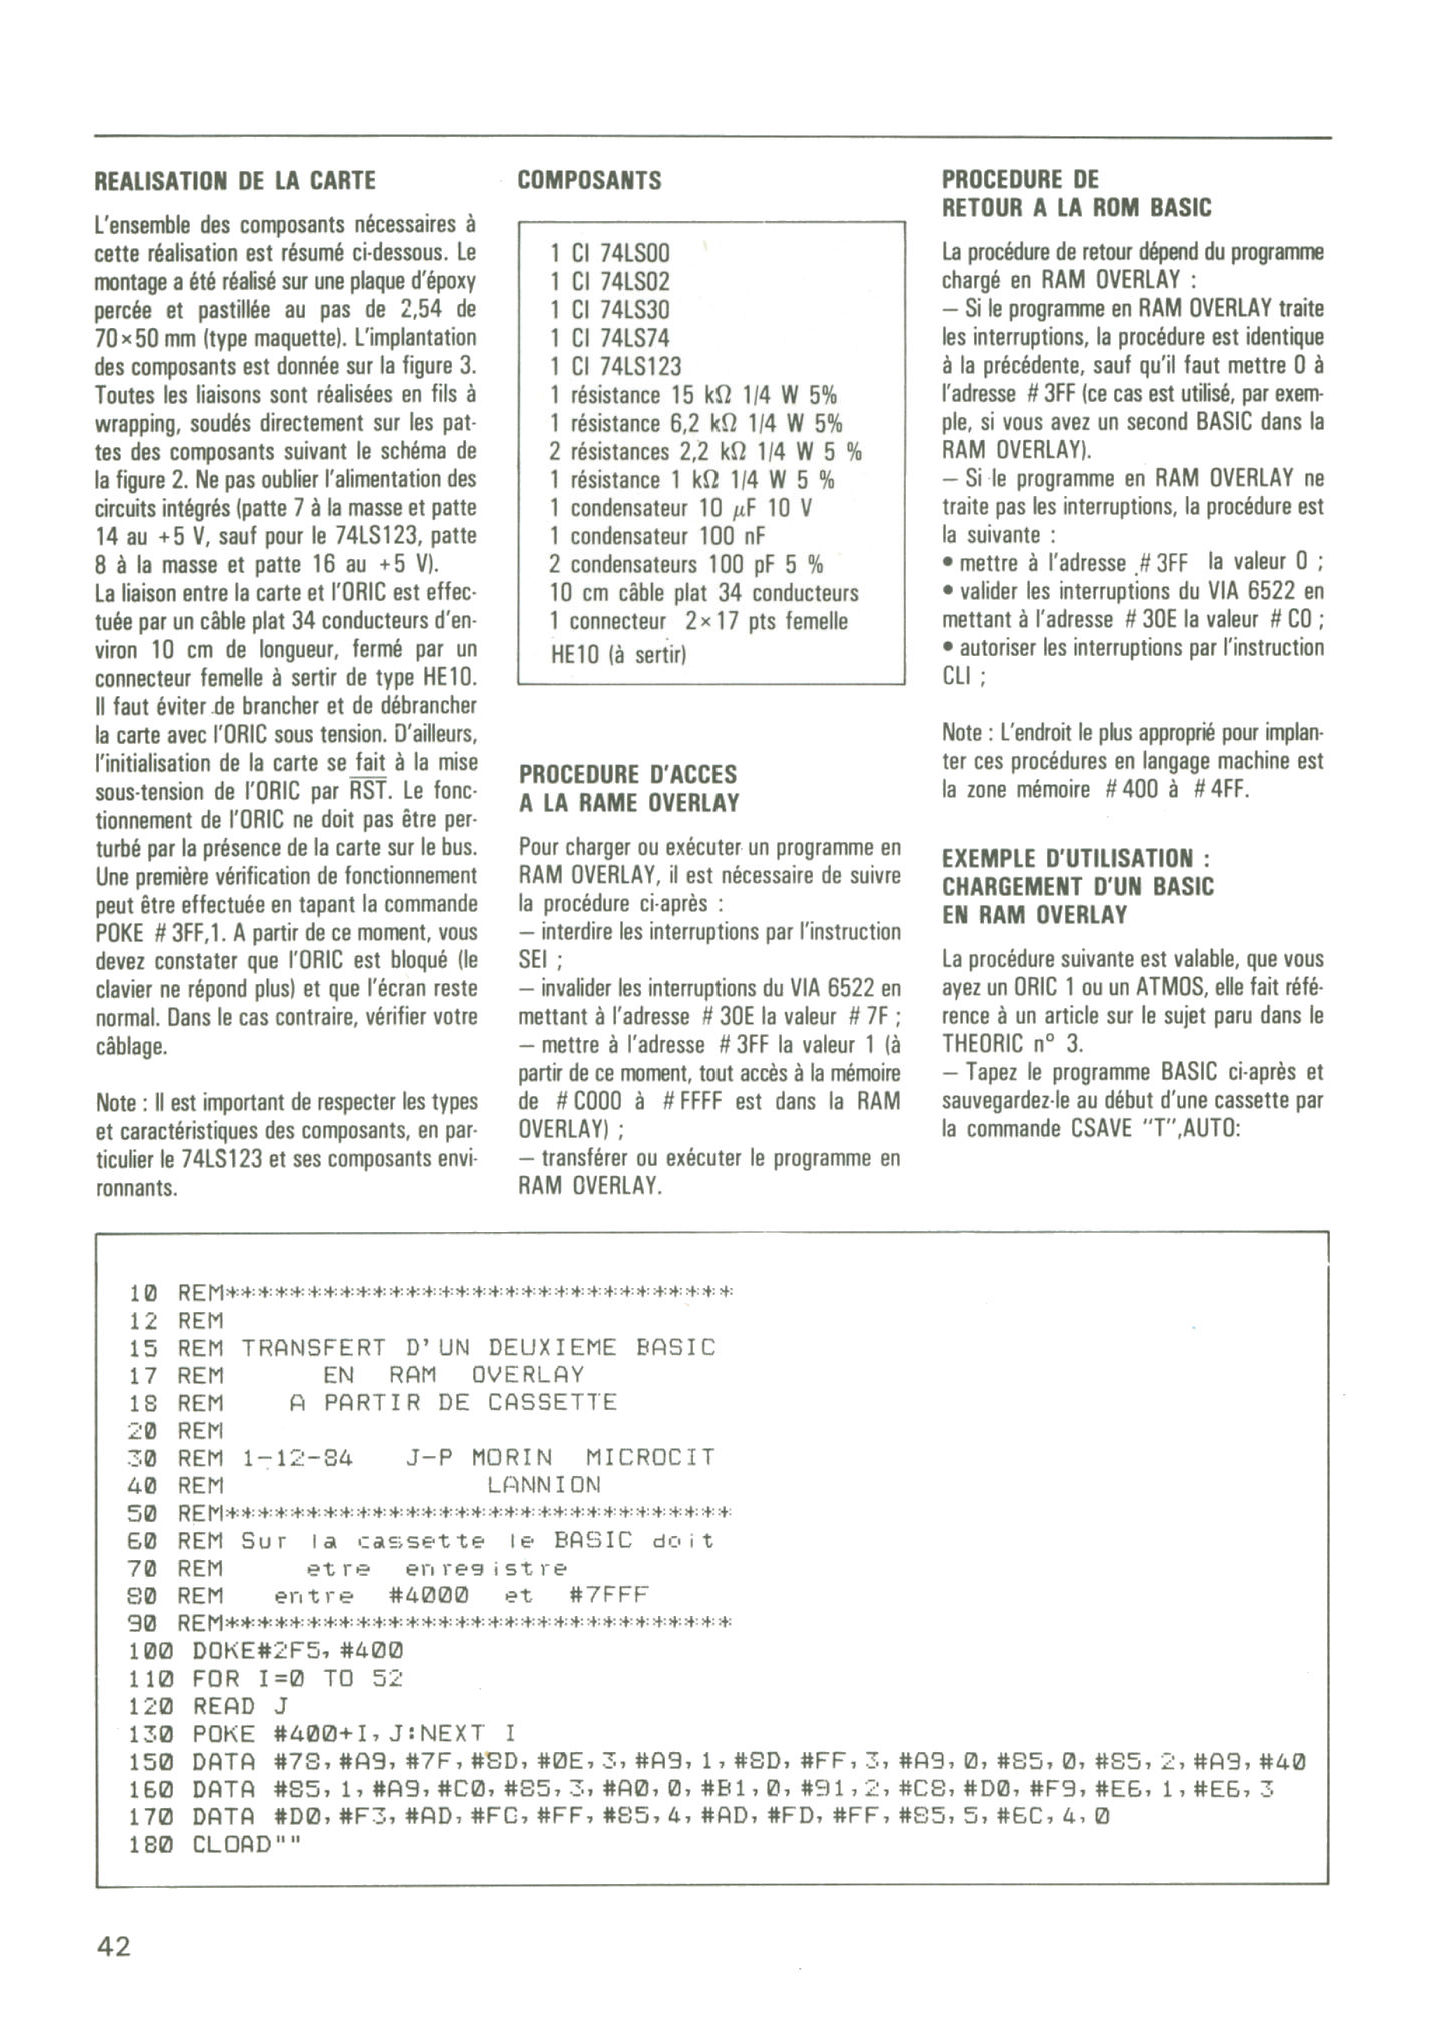 Theoric 05 - Février 1985 - page 42 ram overlay.jpg